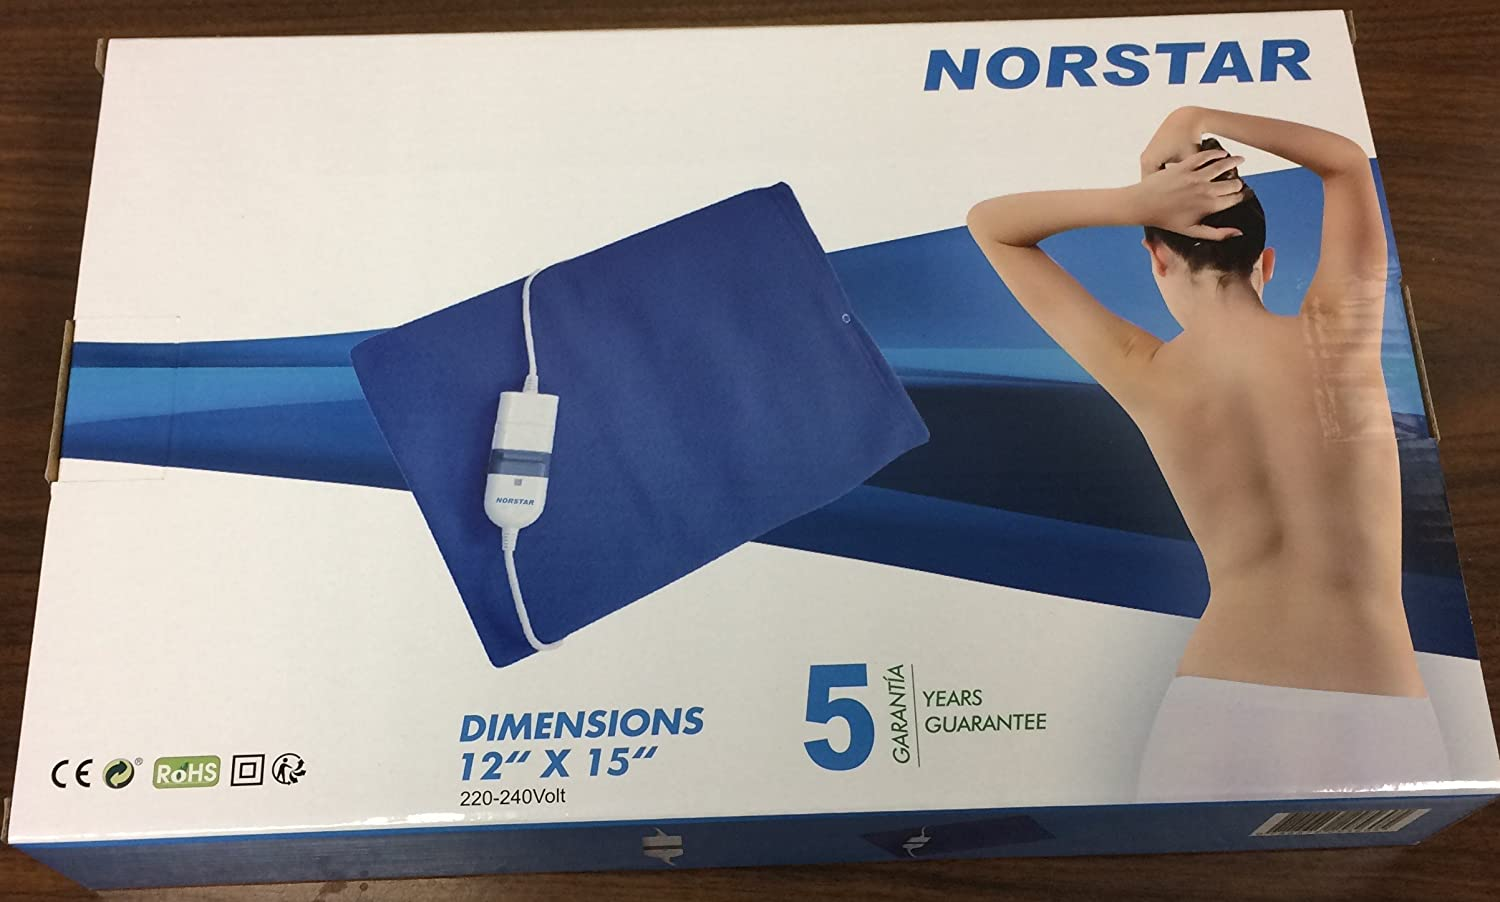 Norstar Moist and Dry Heating Pad for Overseas Use only 220/240 volt ( Will Not Work in the USA)